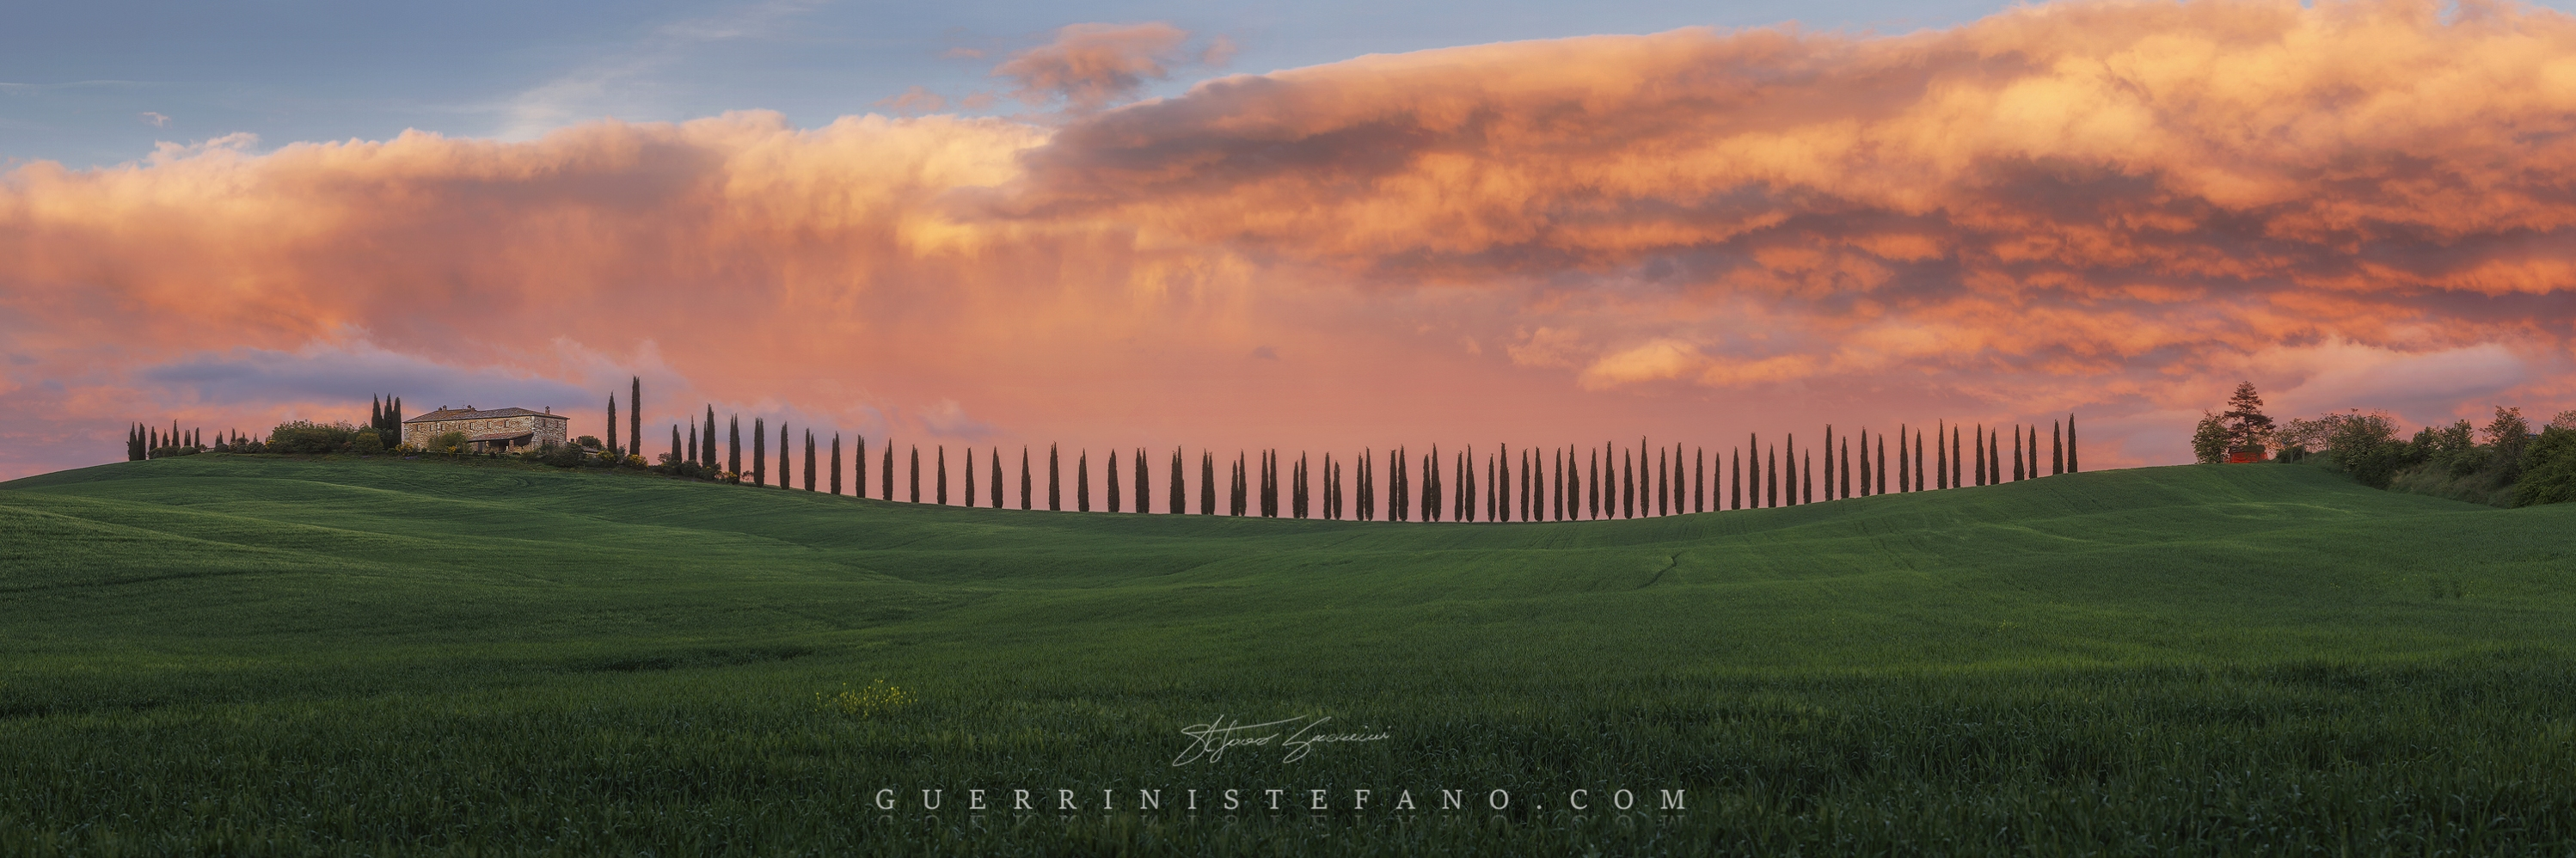 Casale val d'Orcia by Guerrini Stefano